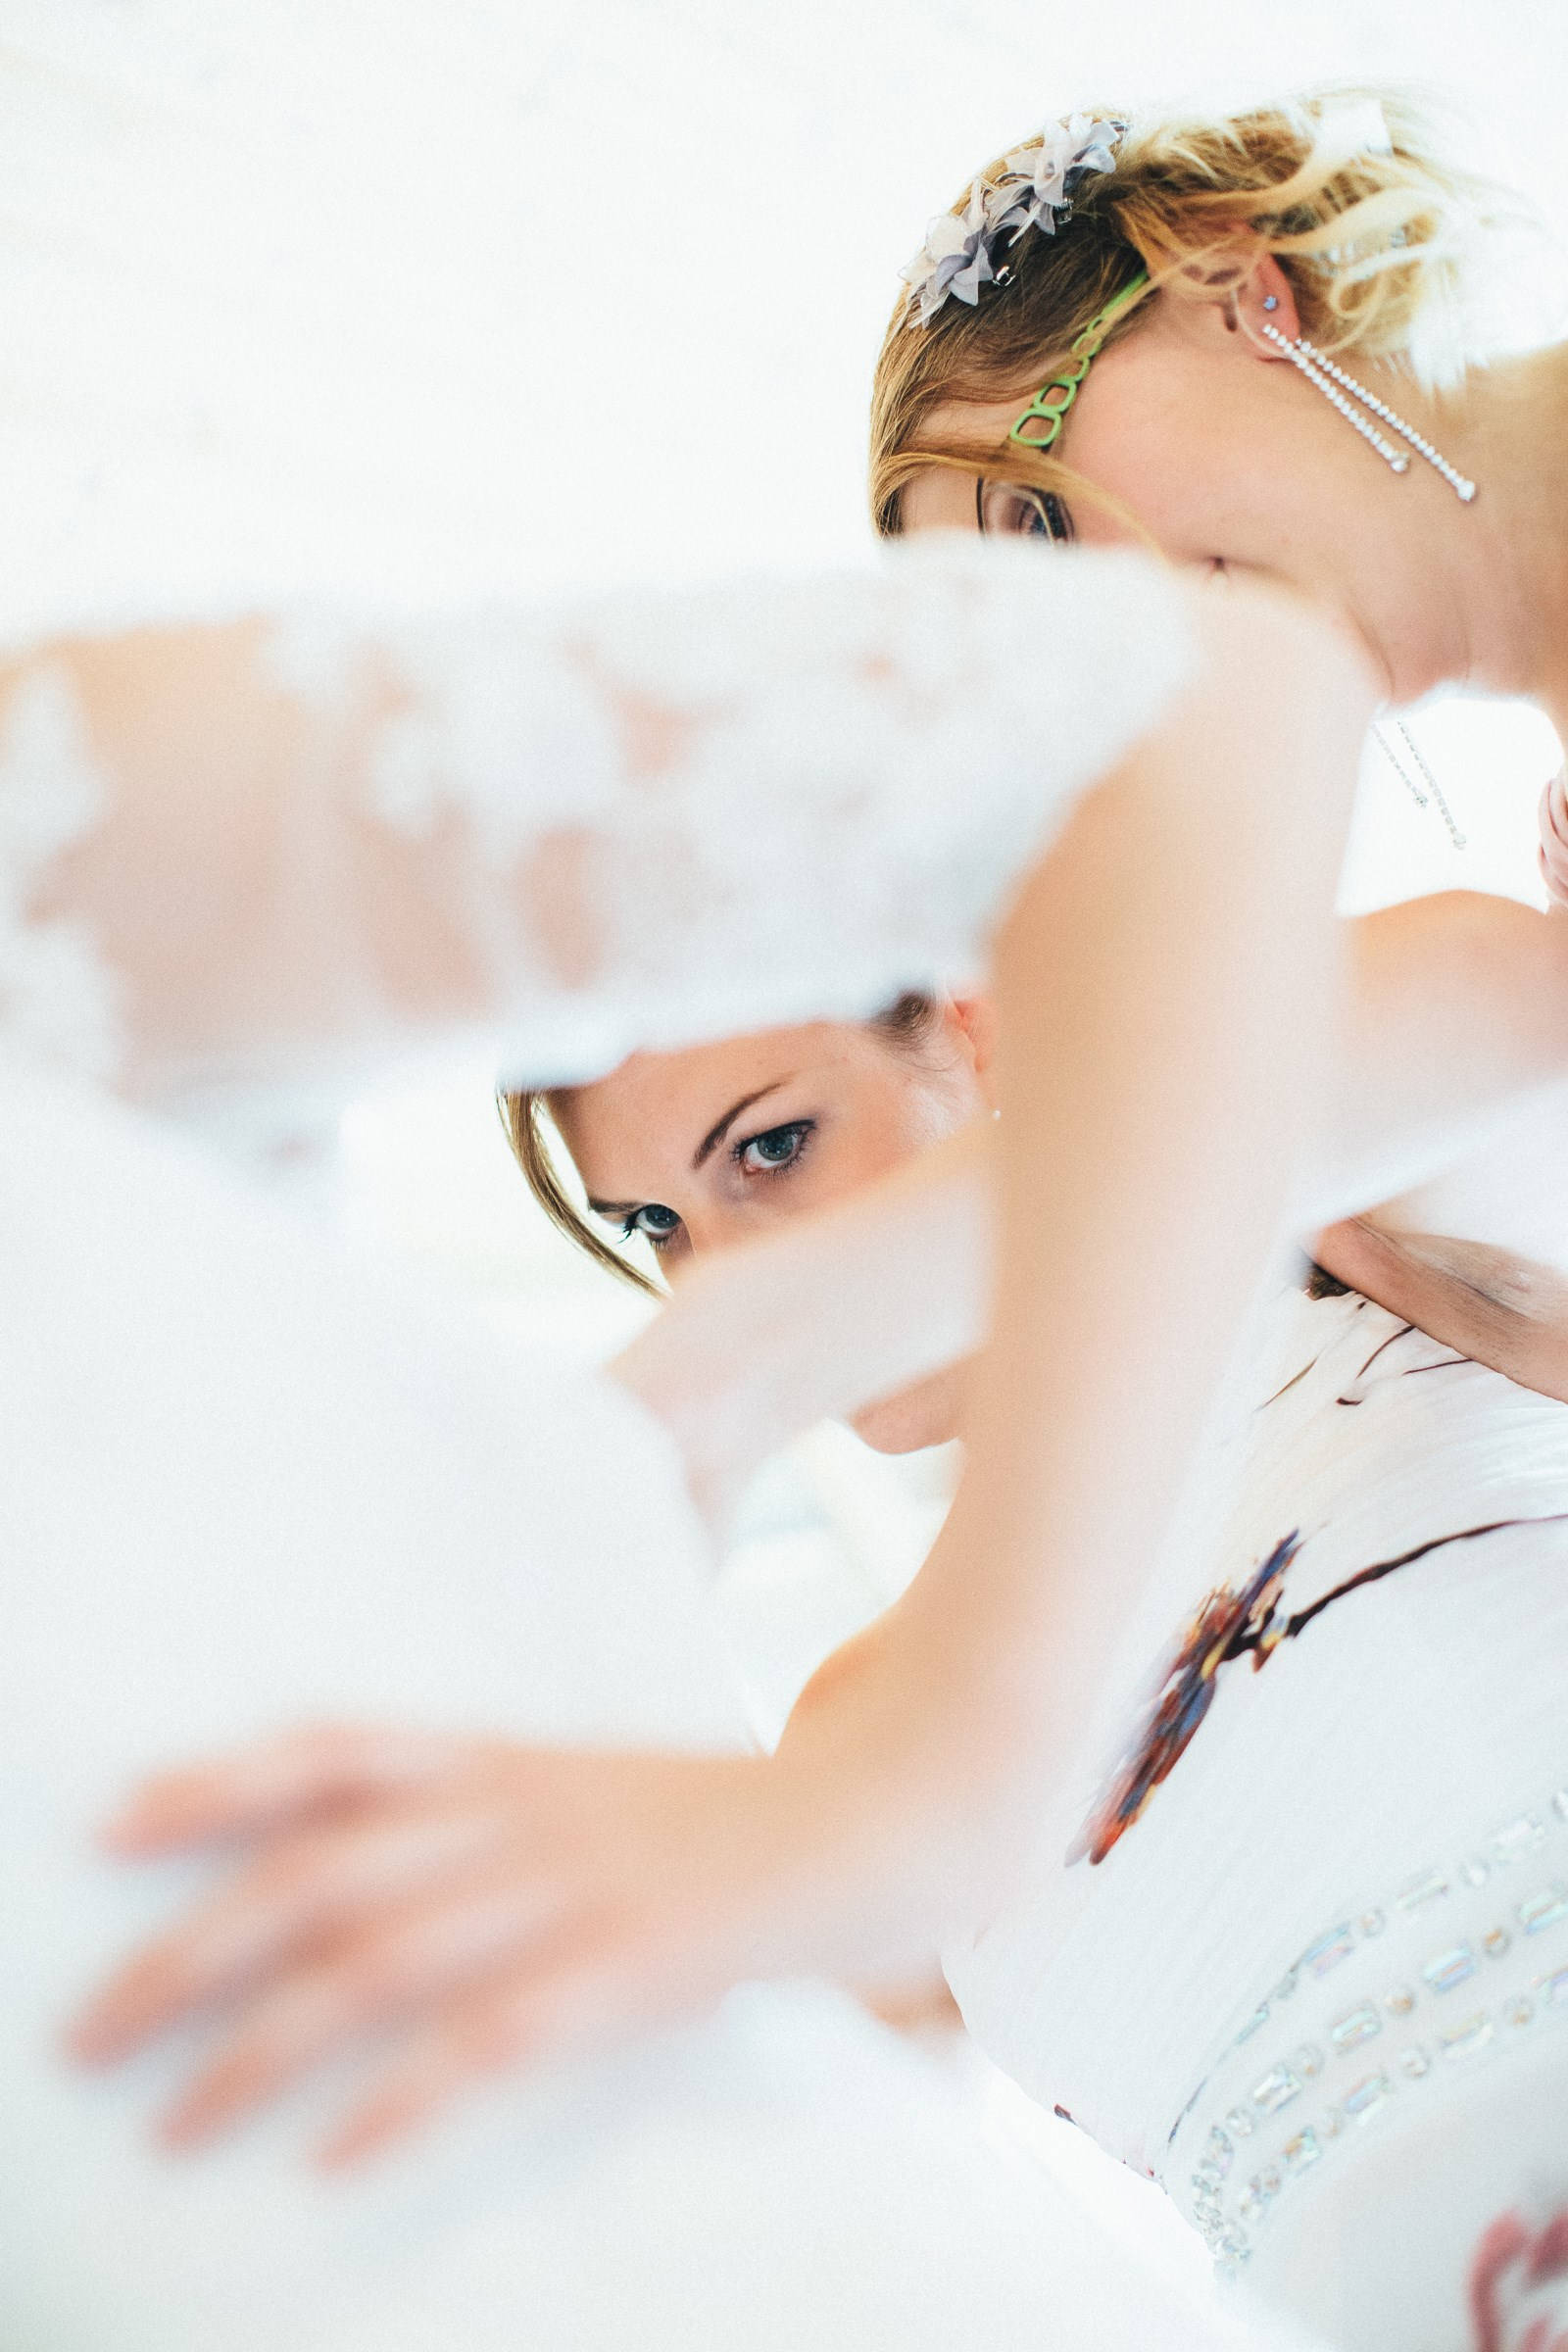 Hochzeitsfotograf: getting ready - WK photography